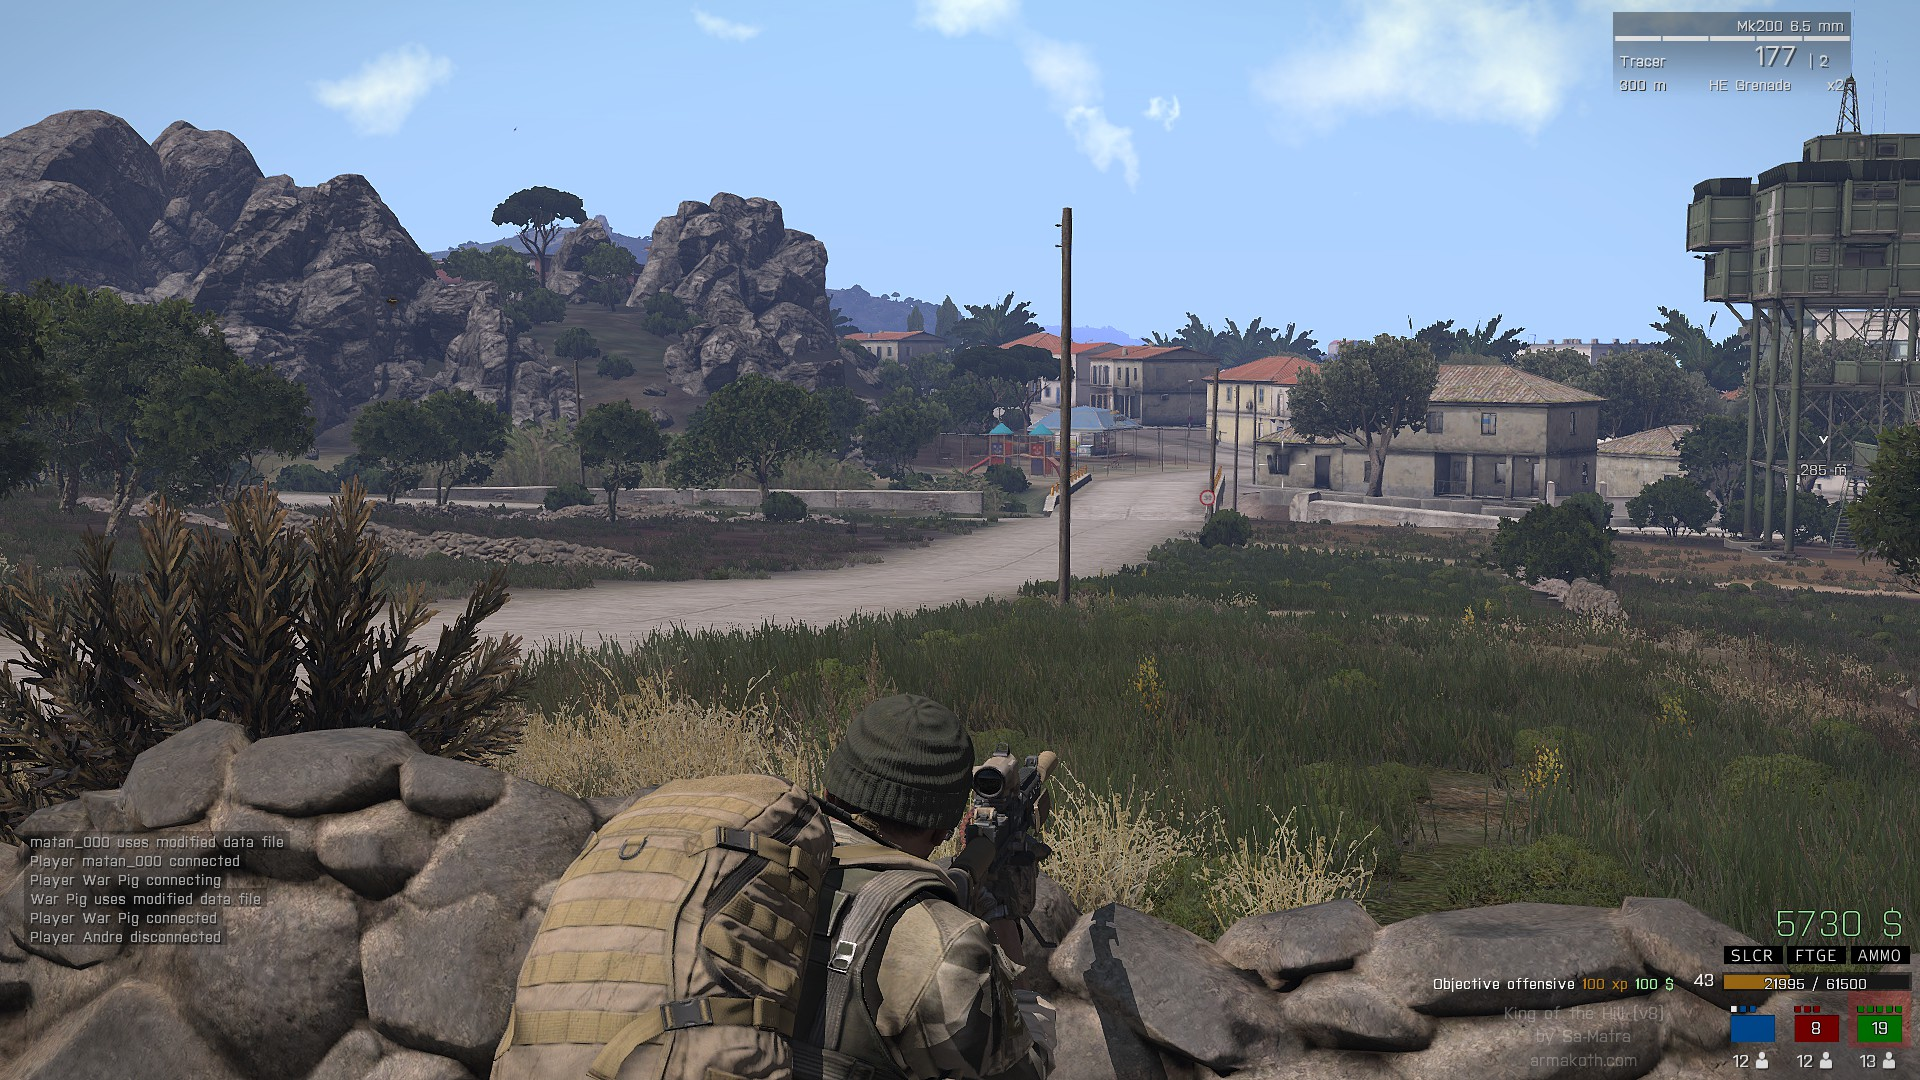 Arma 3 king of the hill modded servers